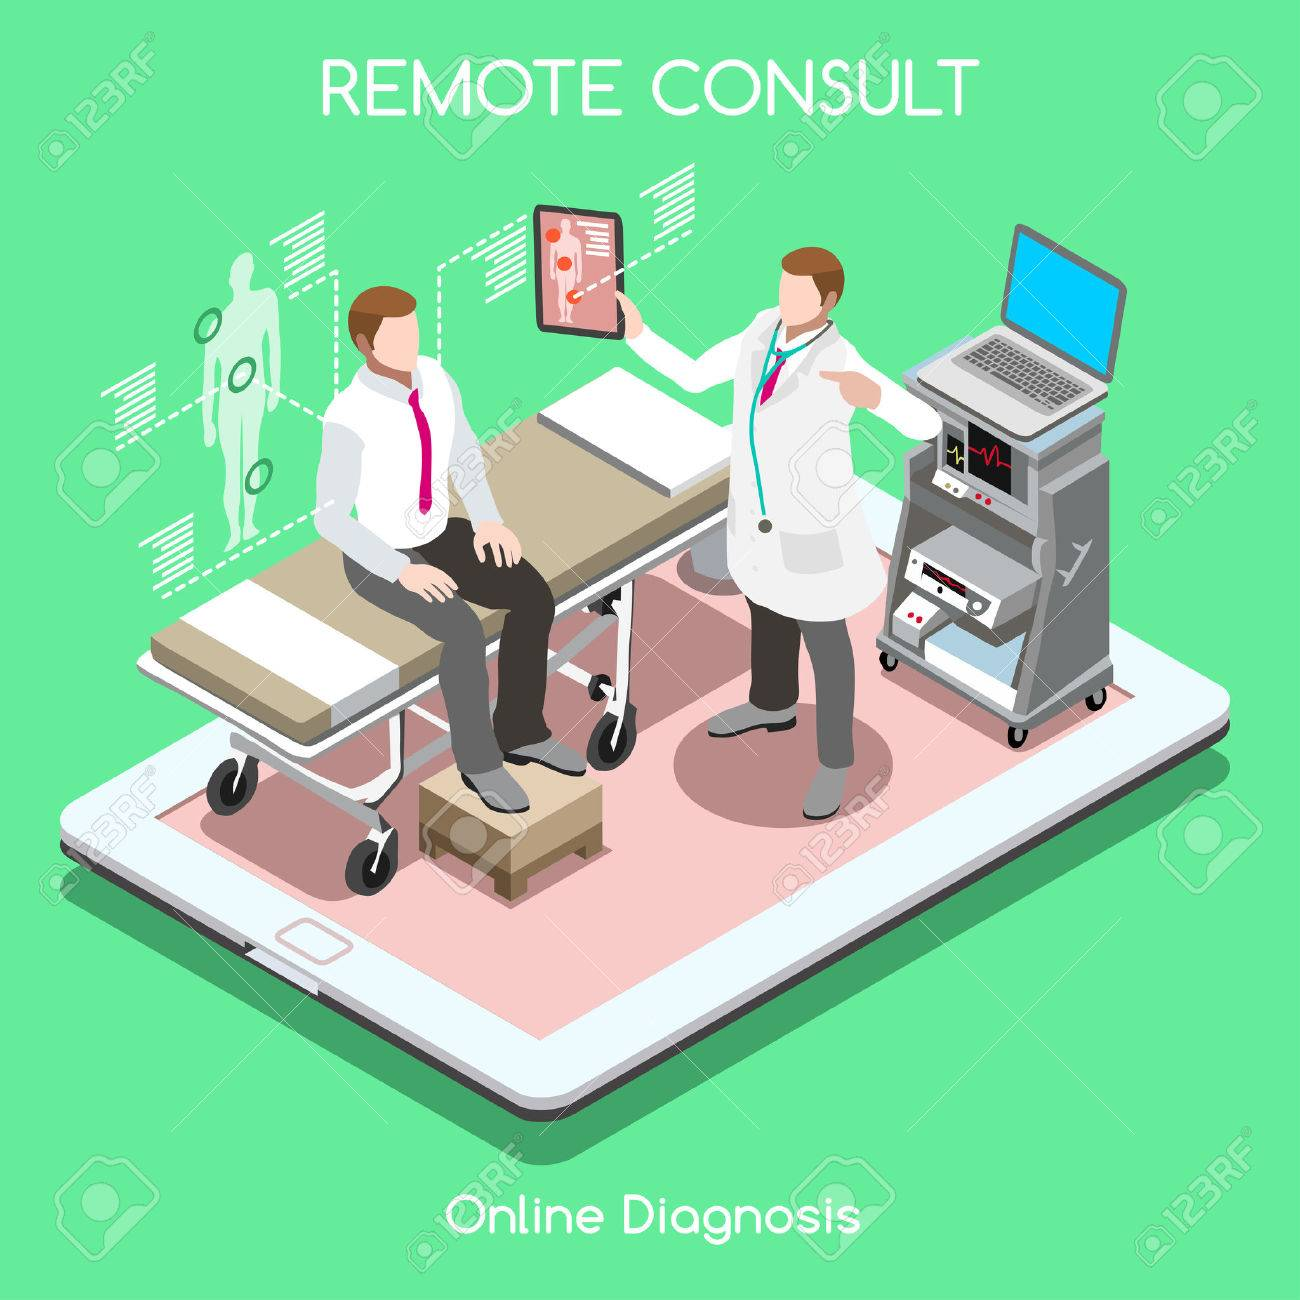 Mobile online remote medical consult clinic hospital flat 3d